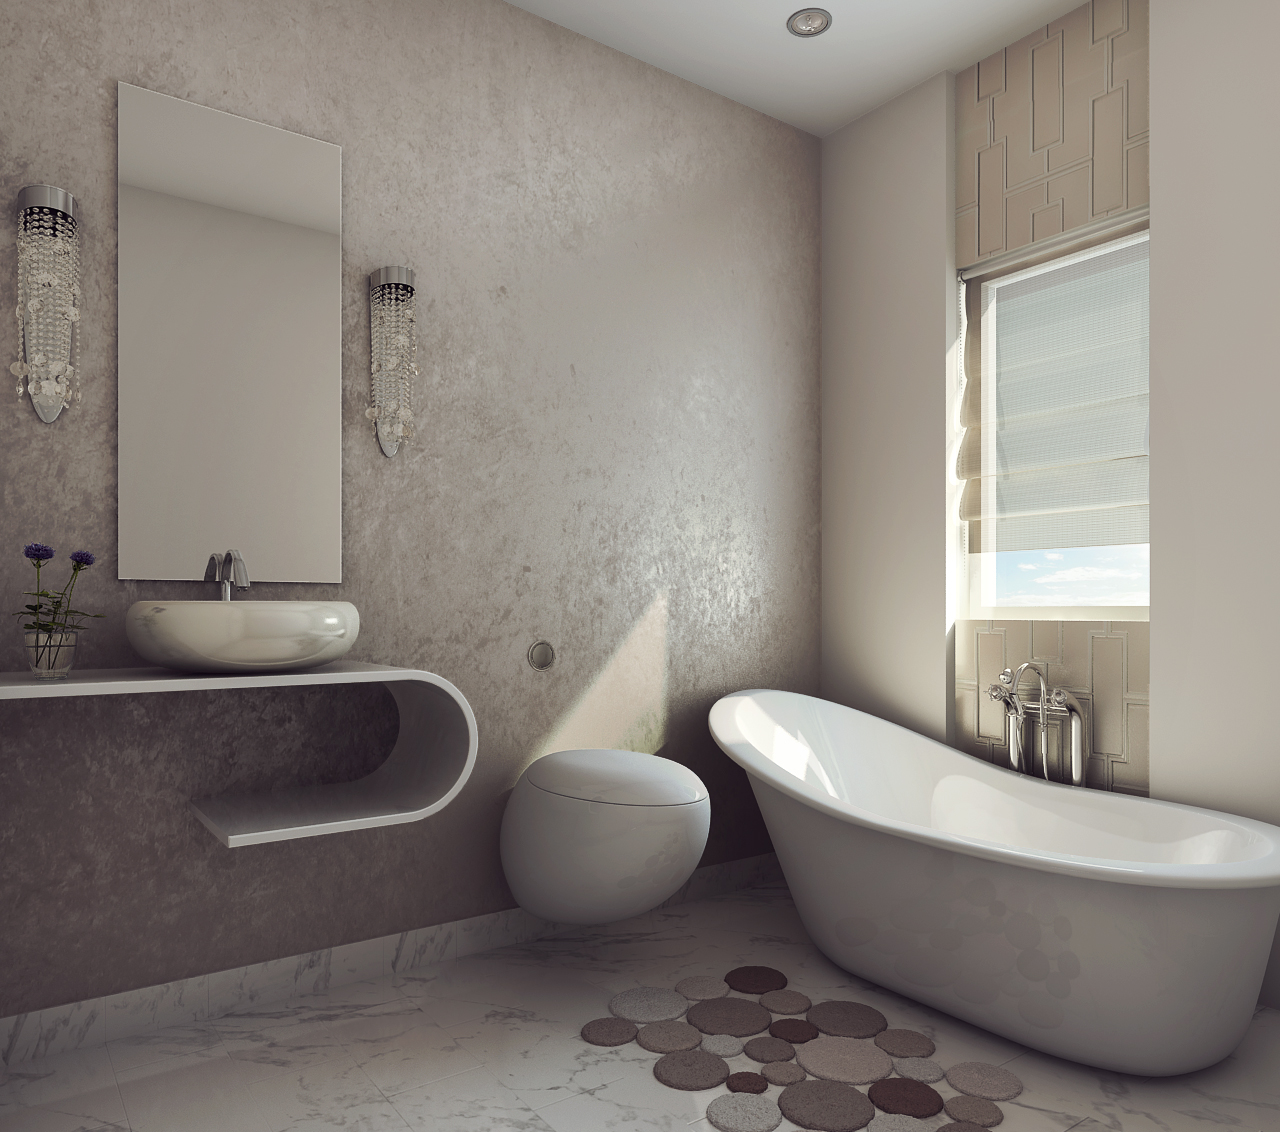 Modern earthy design bath room free 3d model max Design a bathroom online free 3d